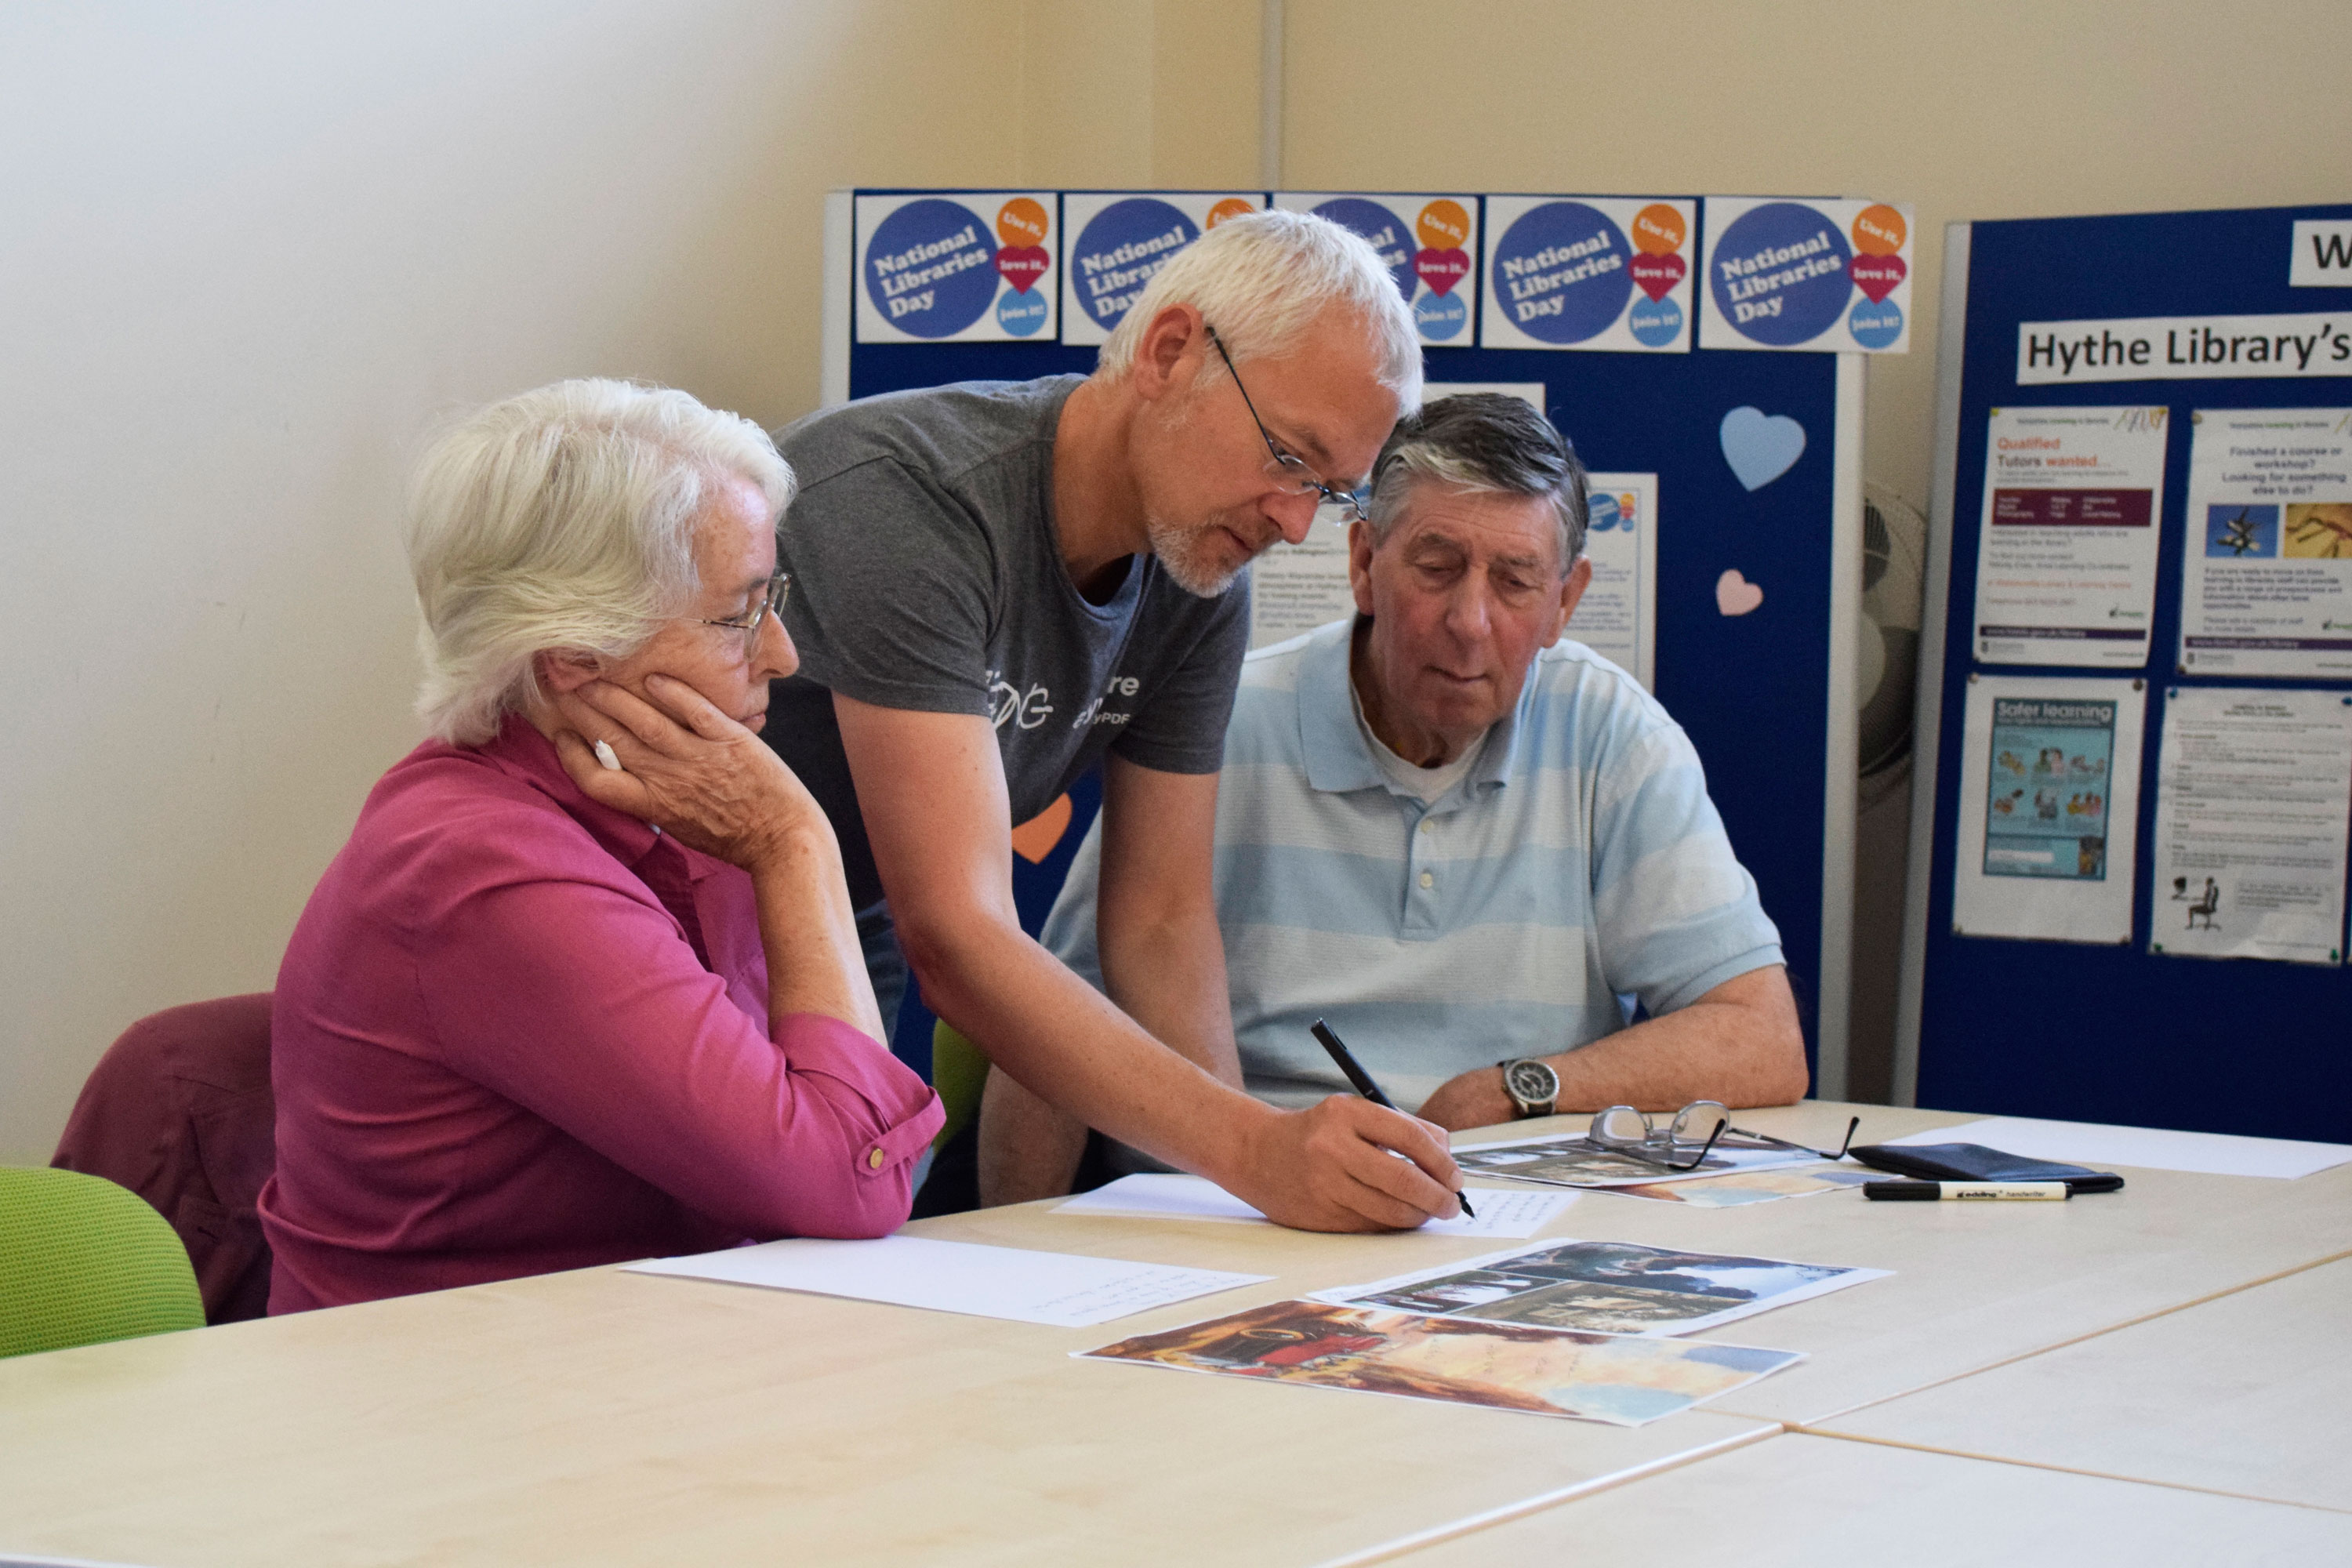 Man working with two people during a reminiscence session at Hythe Library